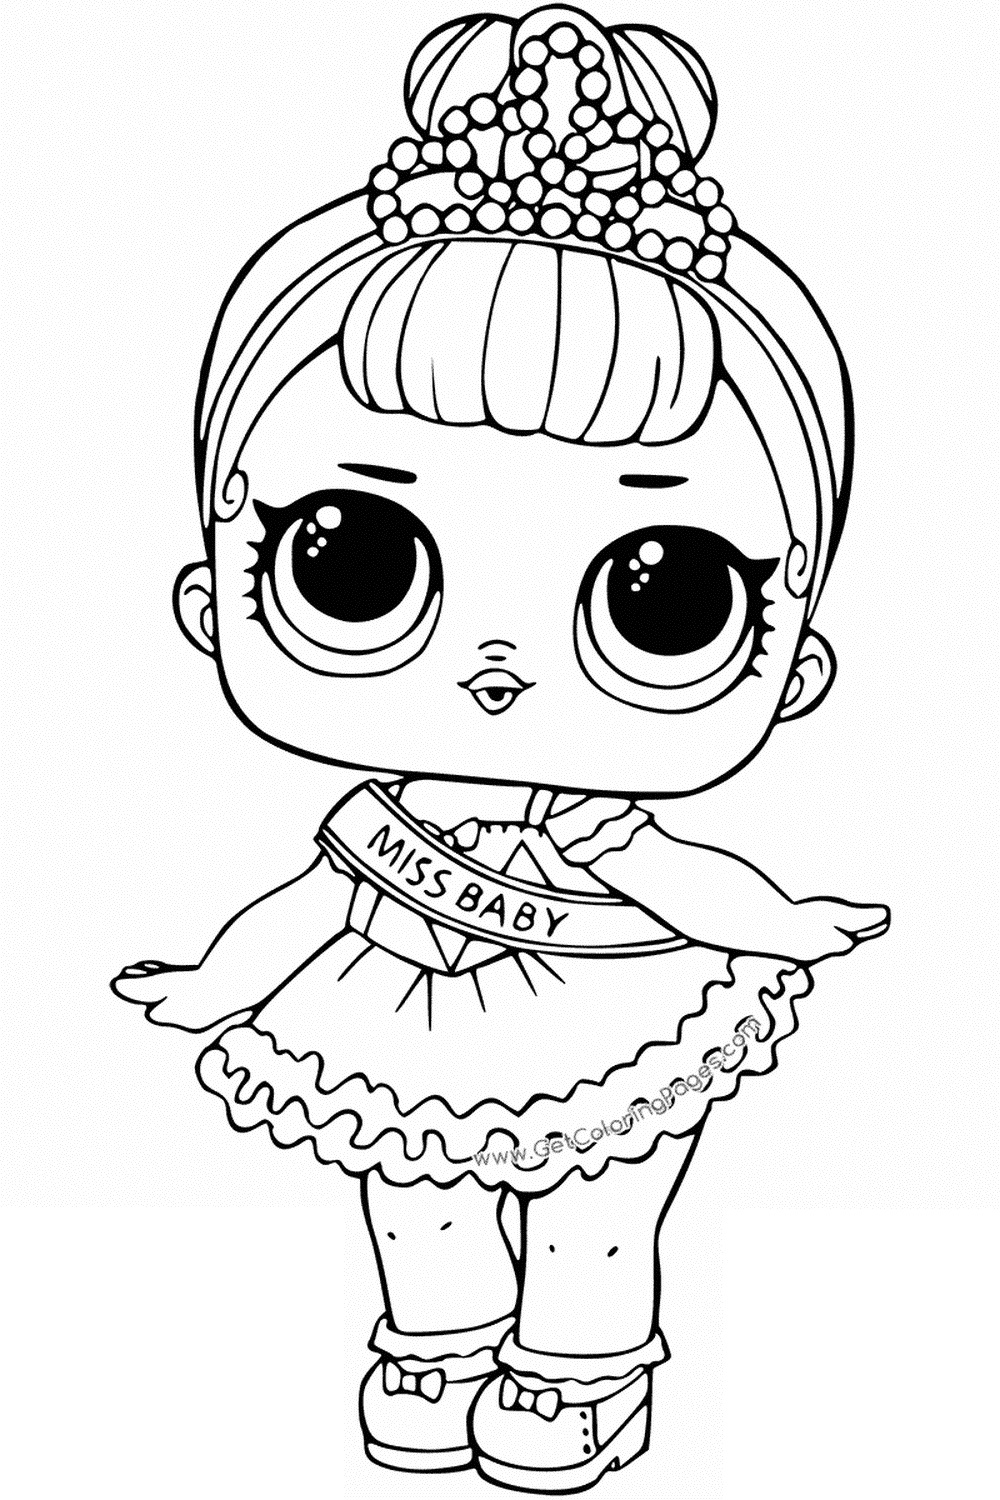 LOL Surprise Dolls Coloring Pages Print Them for Free